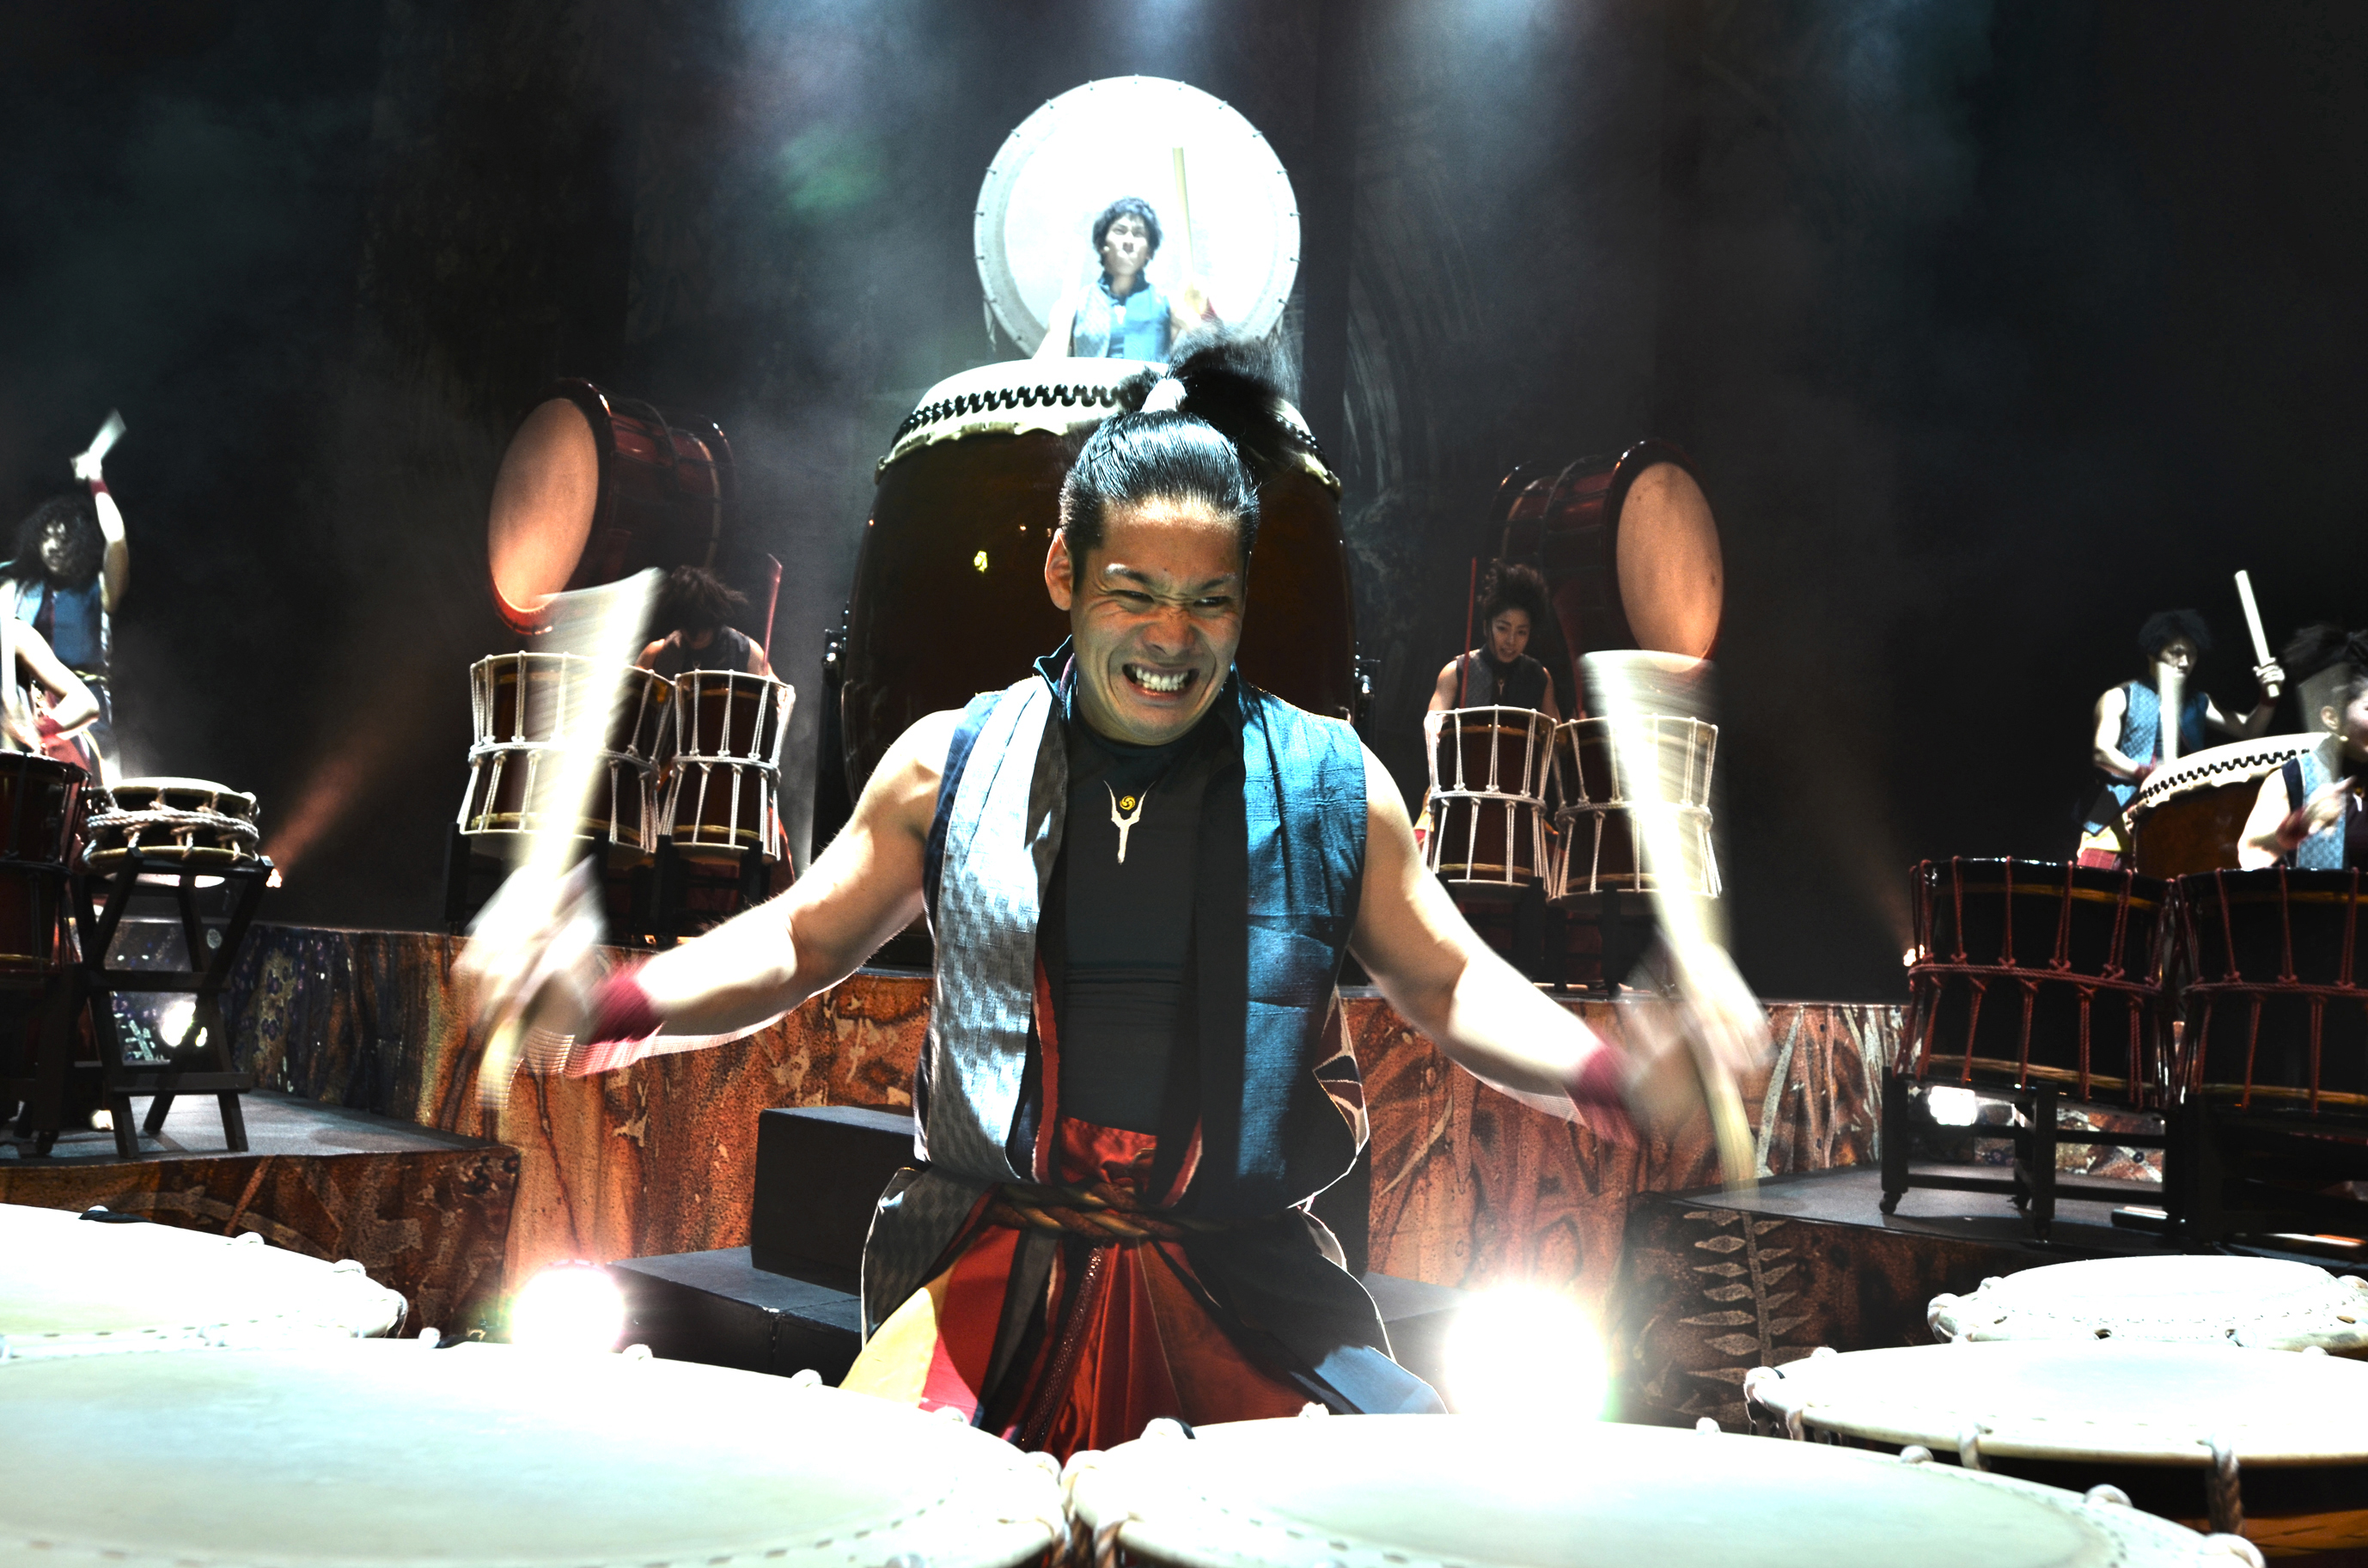 A drummer from Yamato onstage